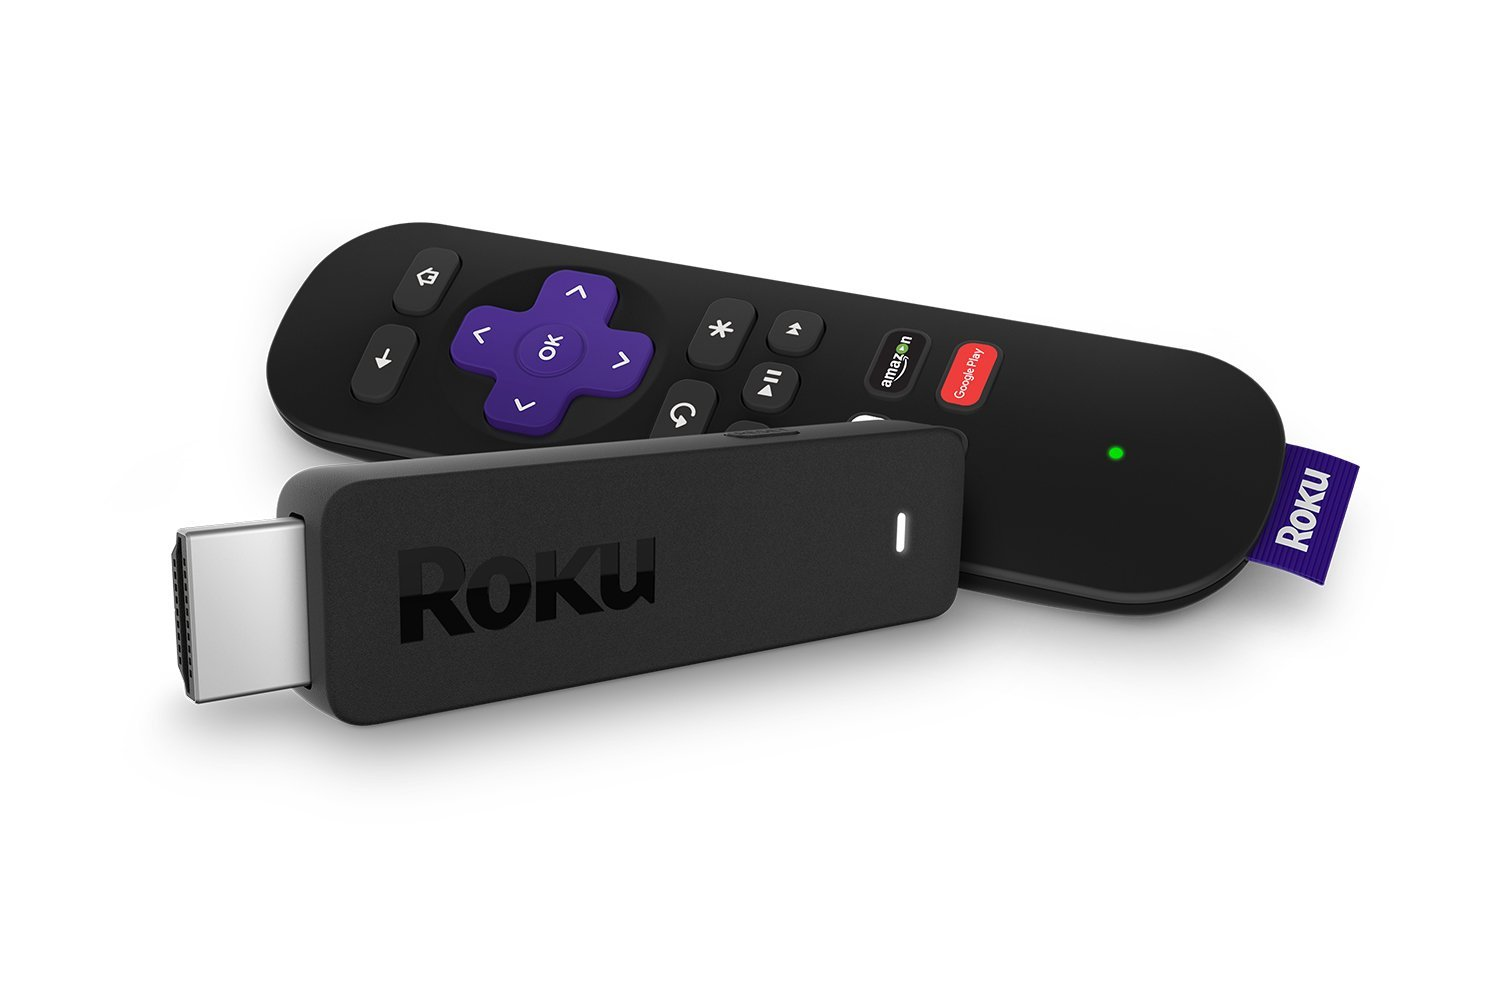 The Roku Streaming Stick. ($35)